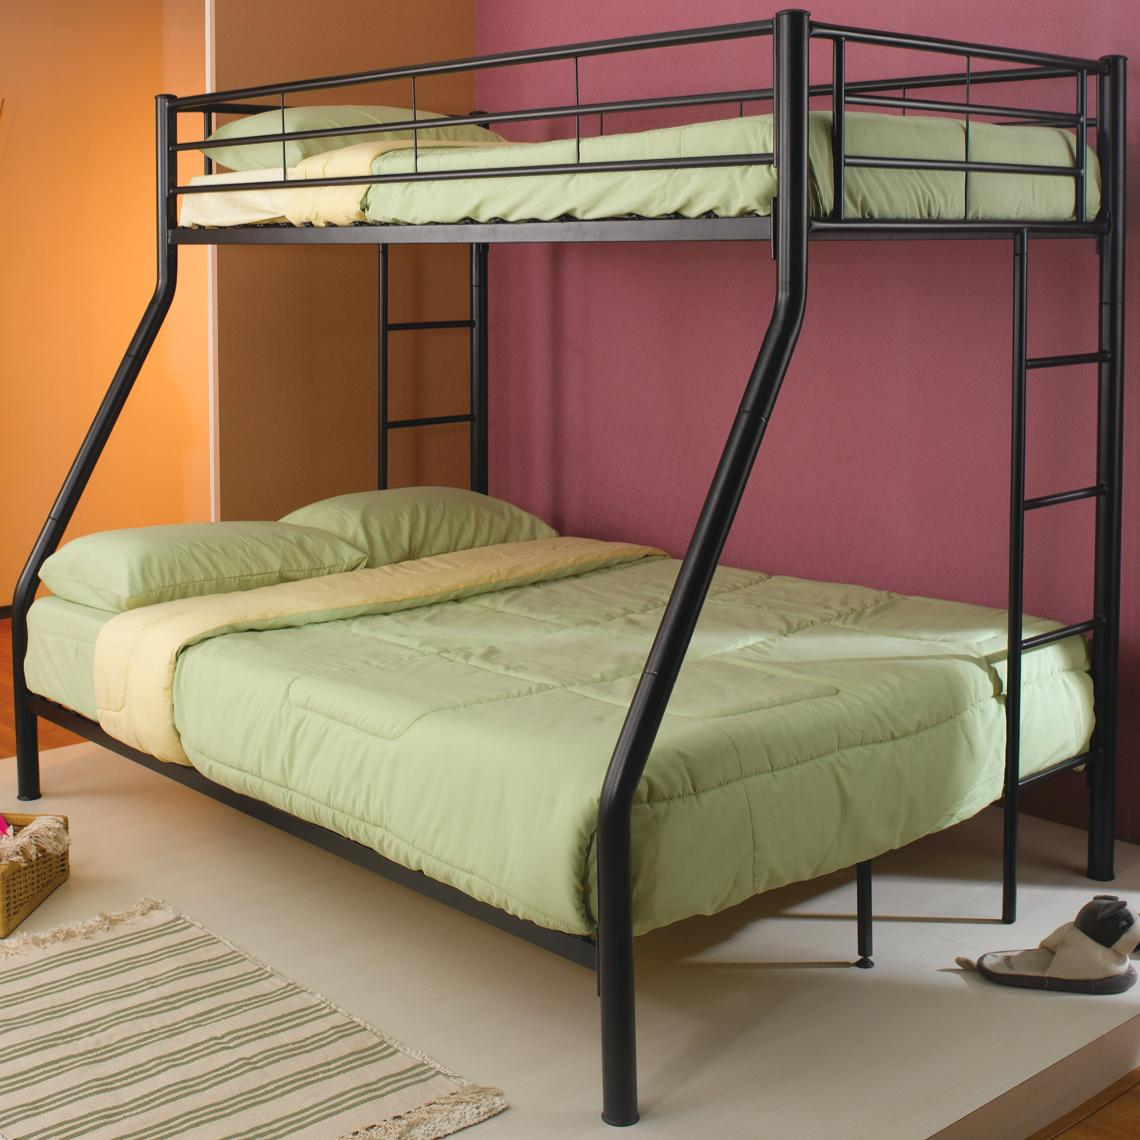 Coaster Denley Metal Twin Over Full Bunk Bed | Standard Furniture | Bunk  Beds Birmingham, Huntsville, Hoover, Decatur, Alabaster, Bessemer, AL